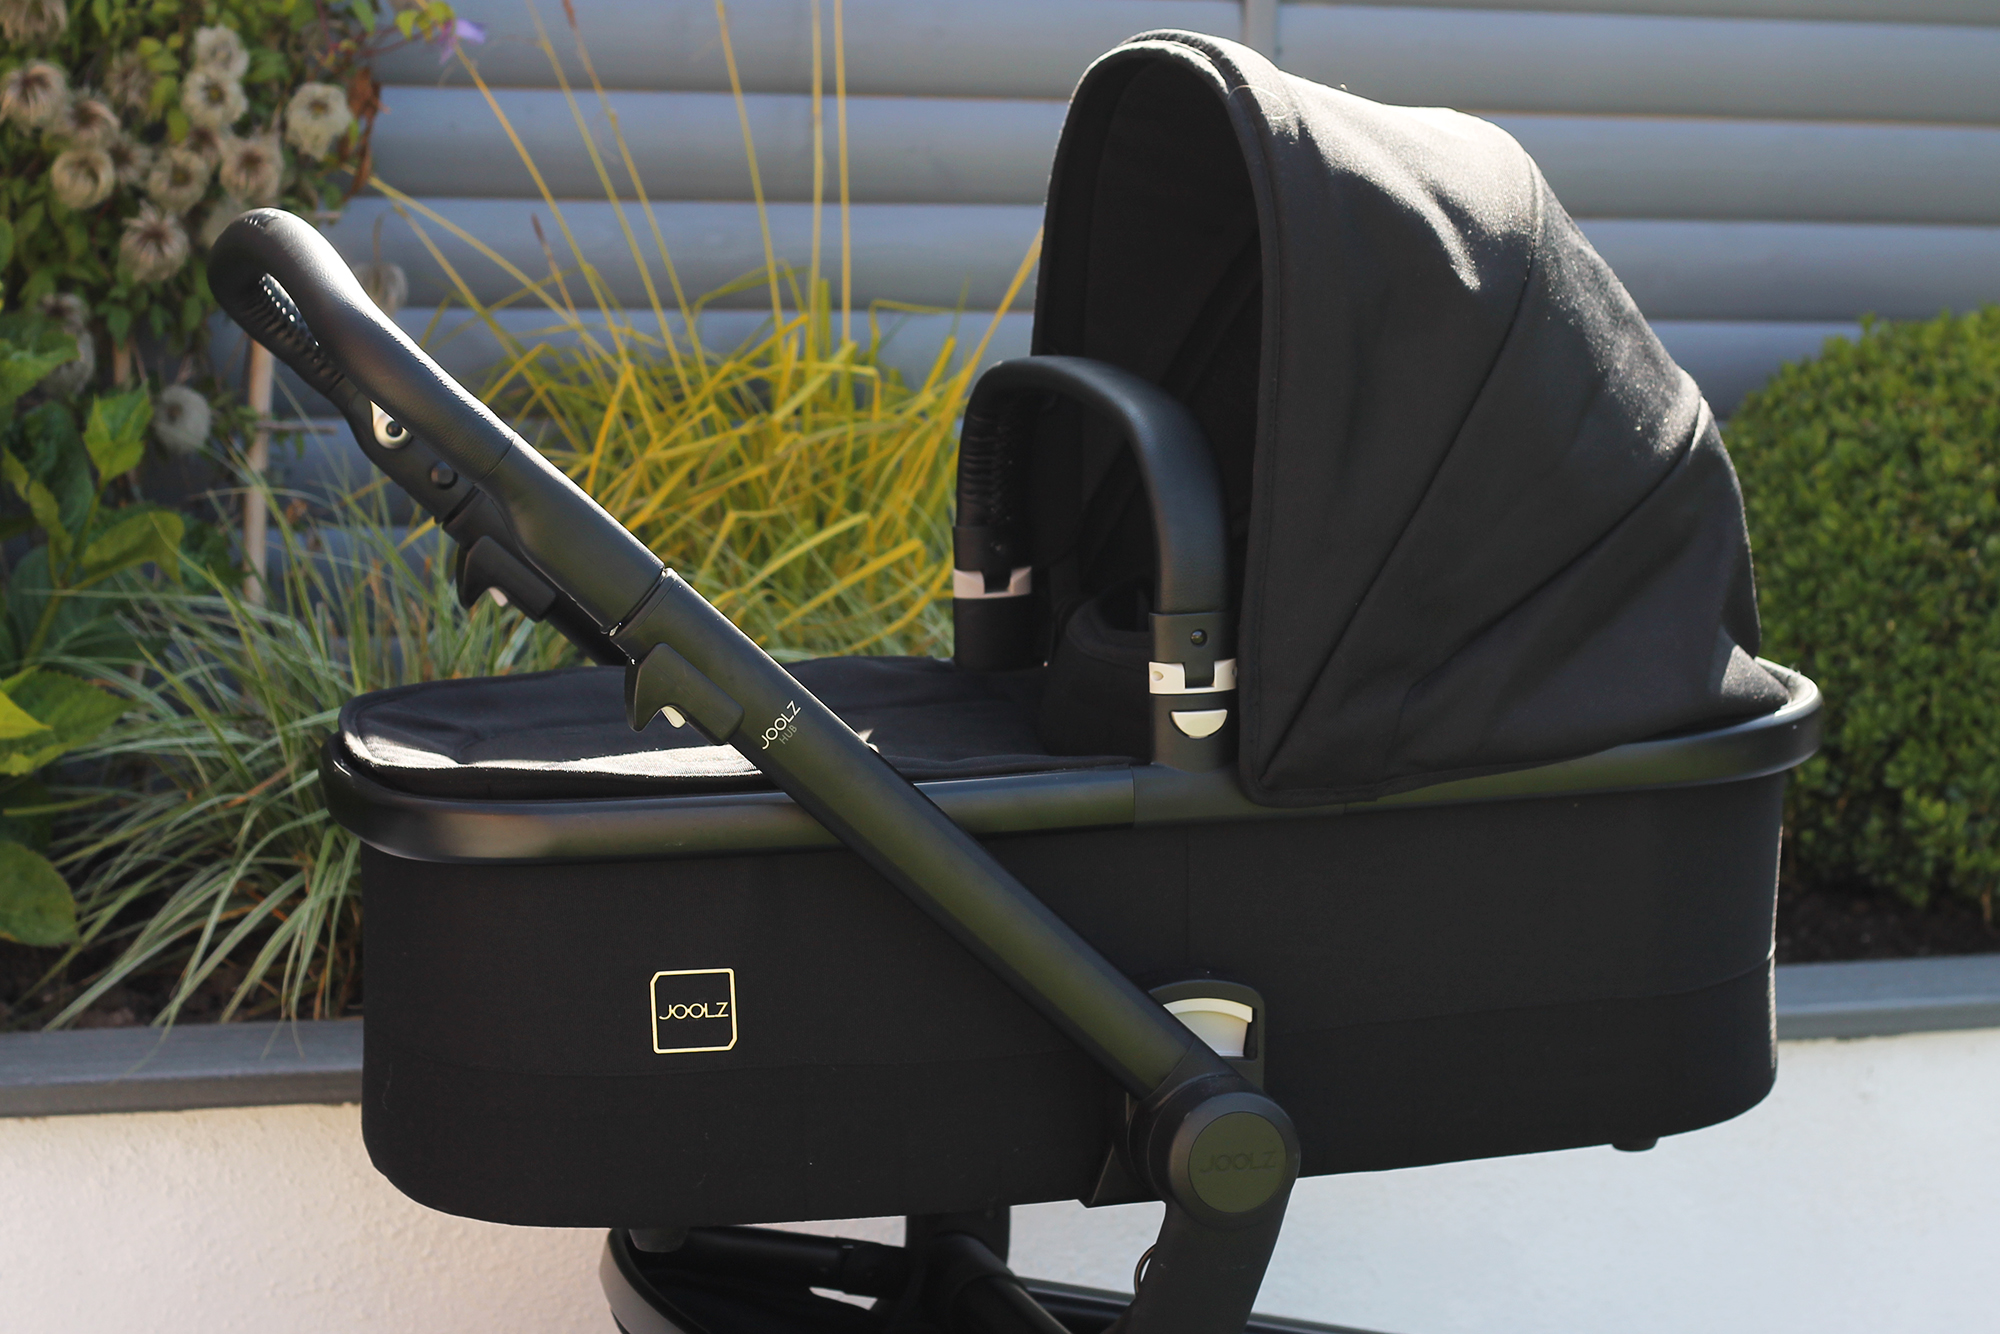 The carry cot of the Joolz Hub travel system in black